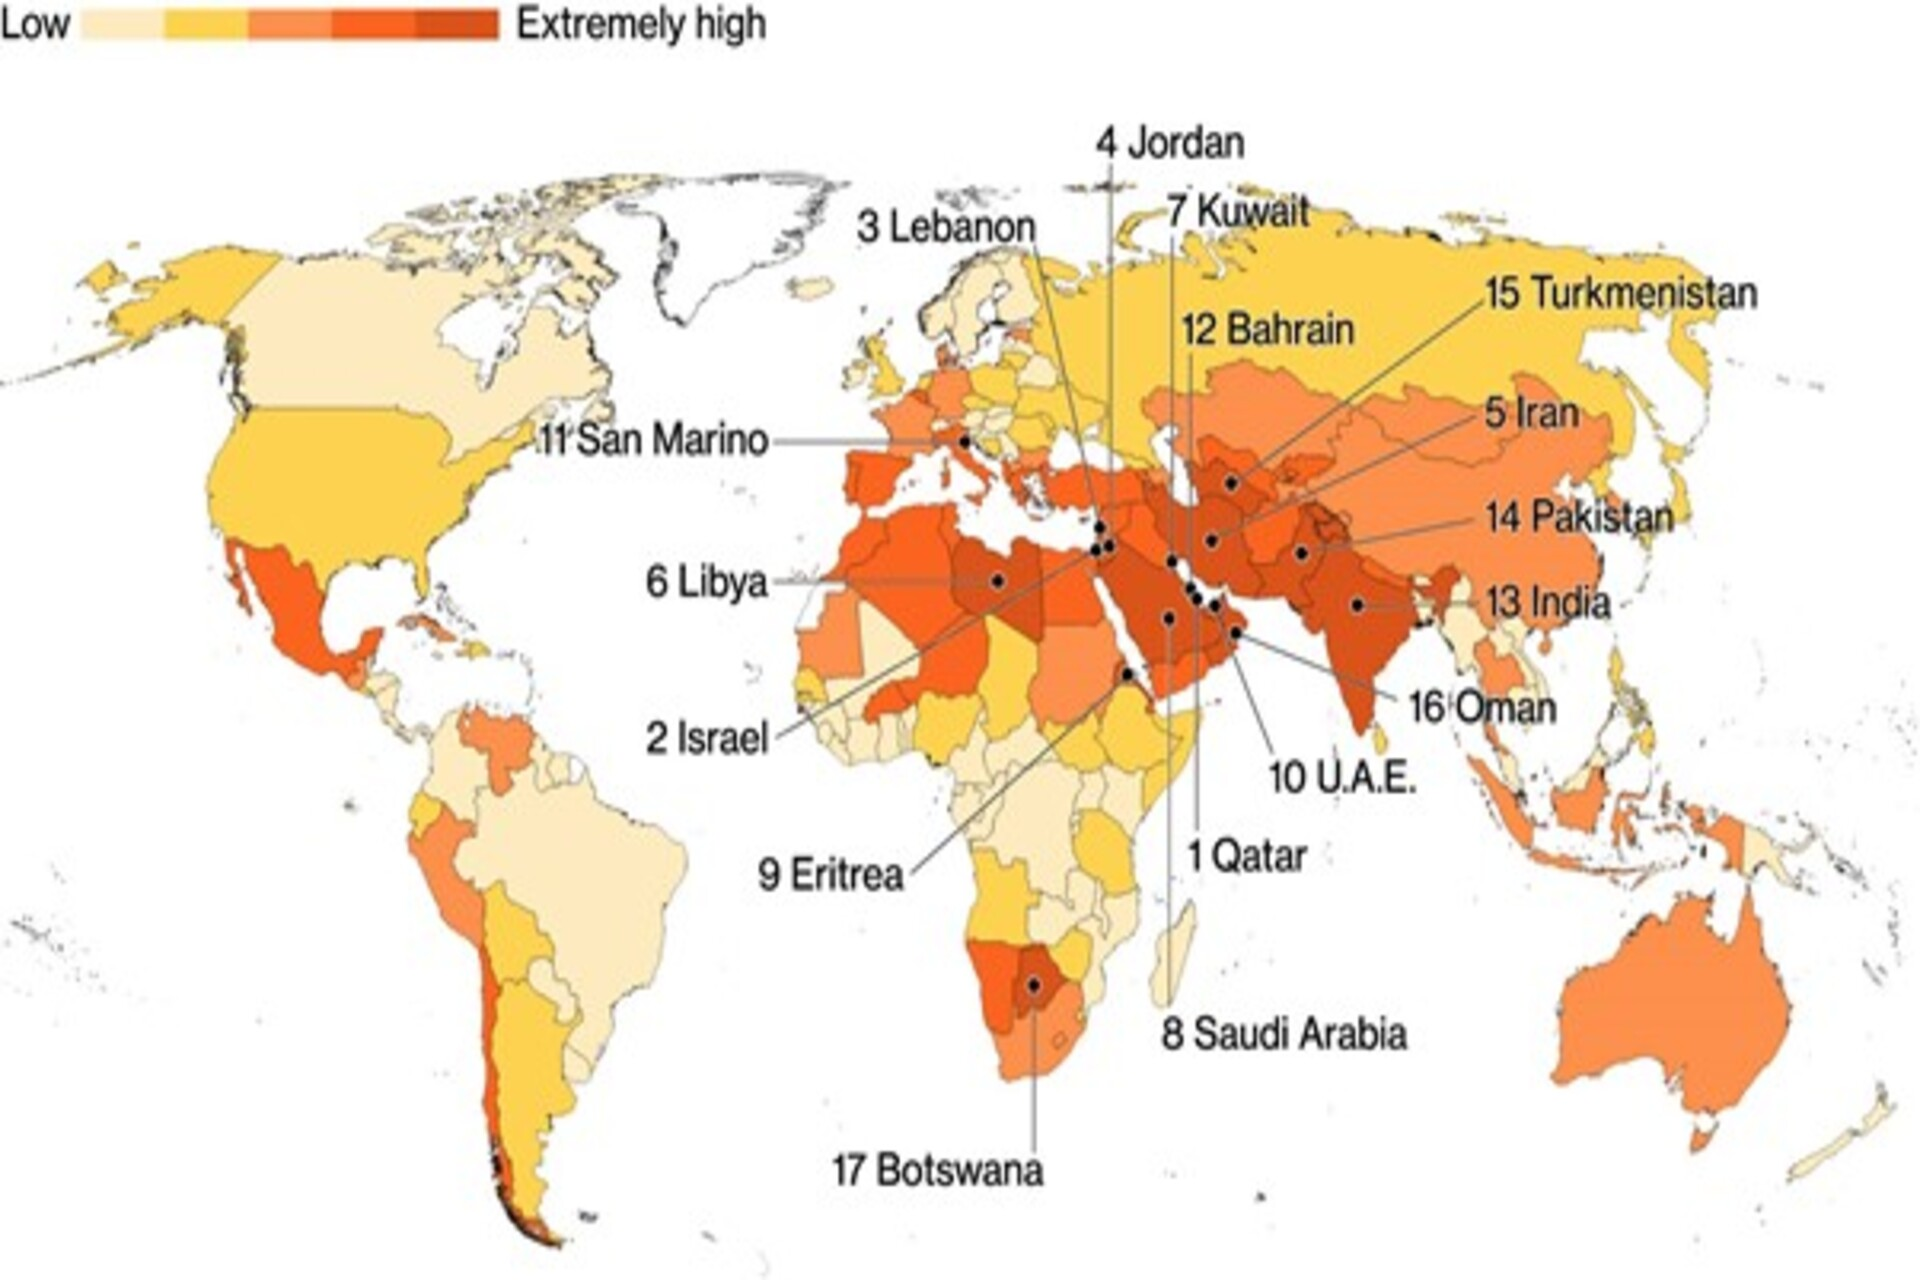 Global water scarcity map